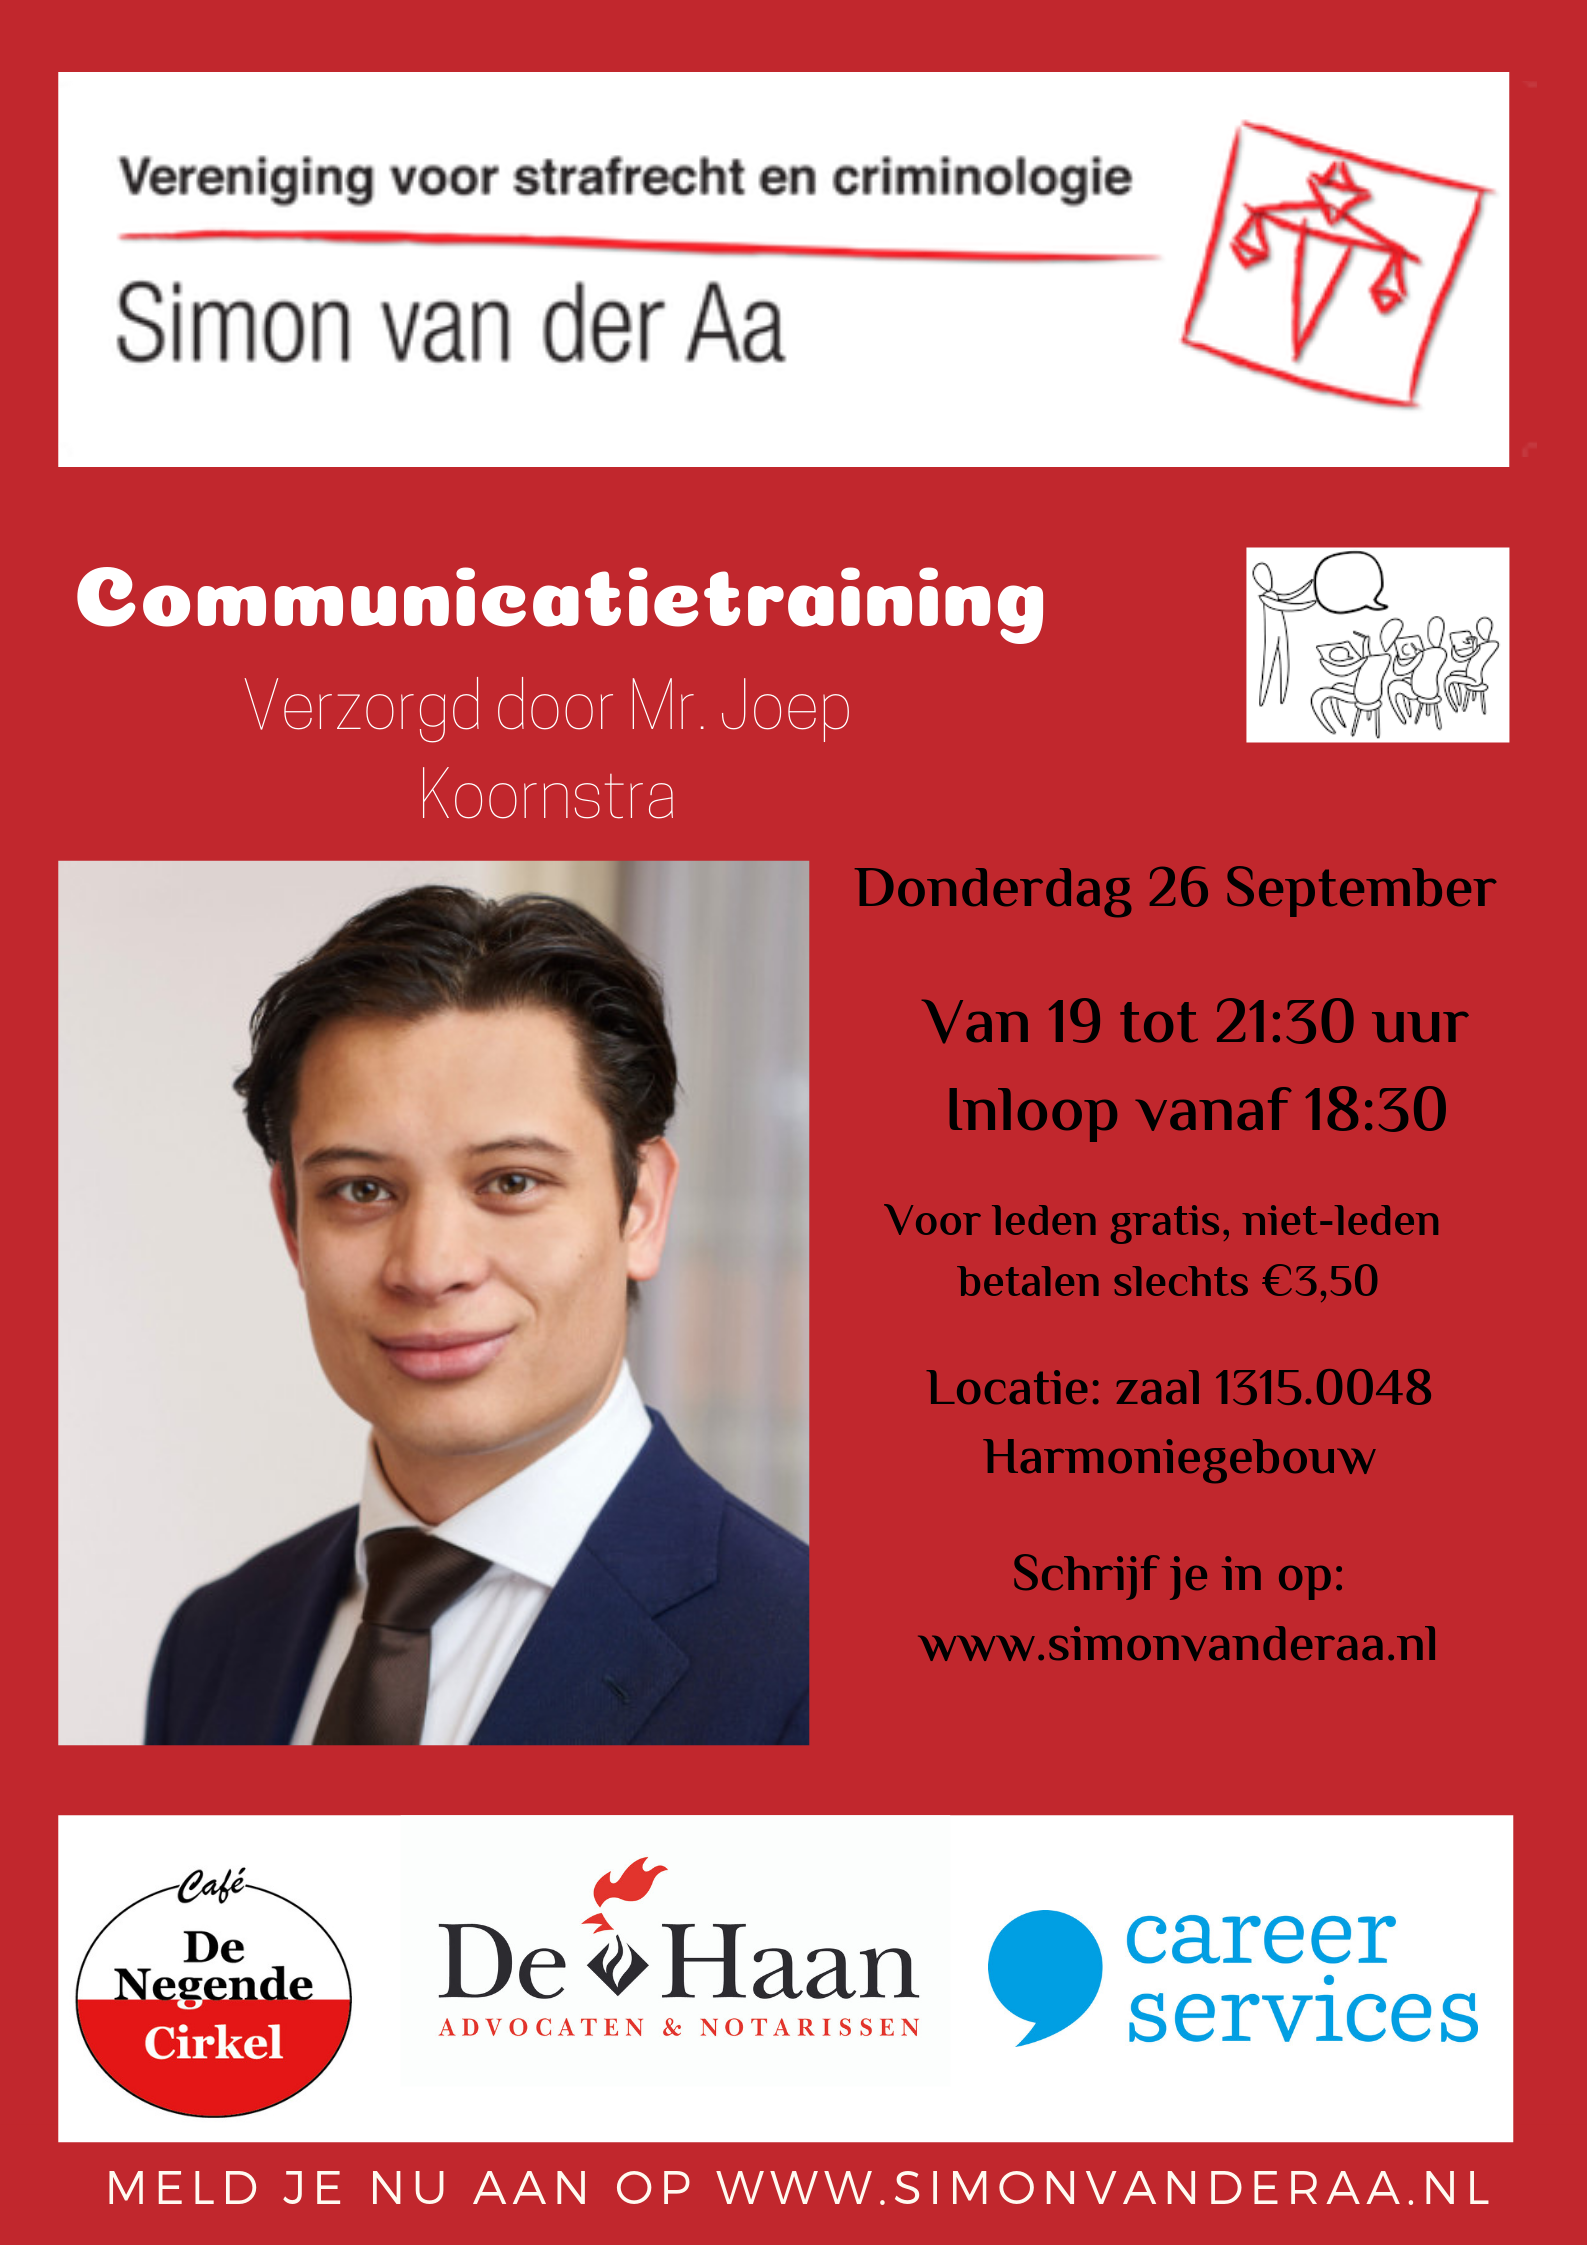 Communicatietraining